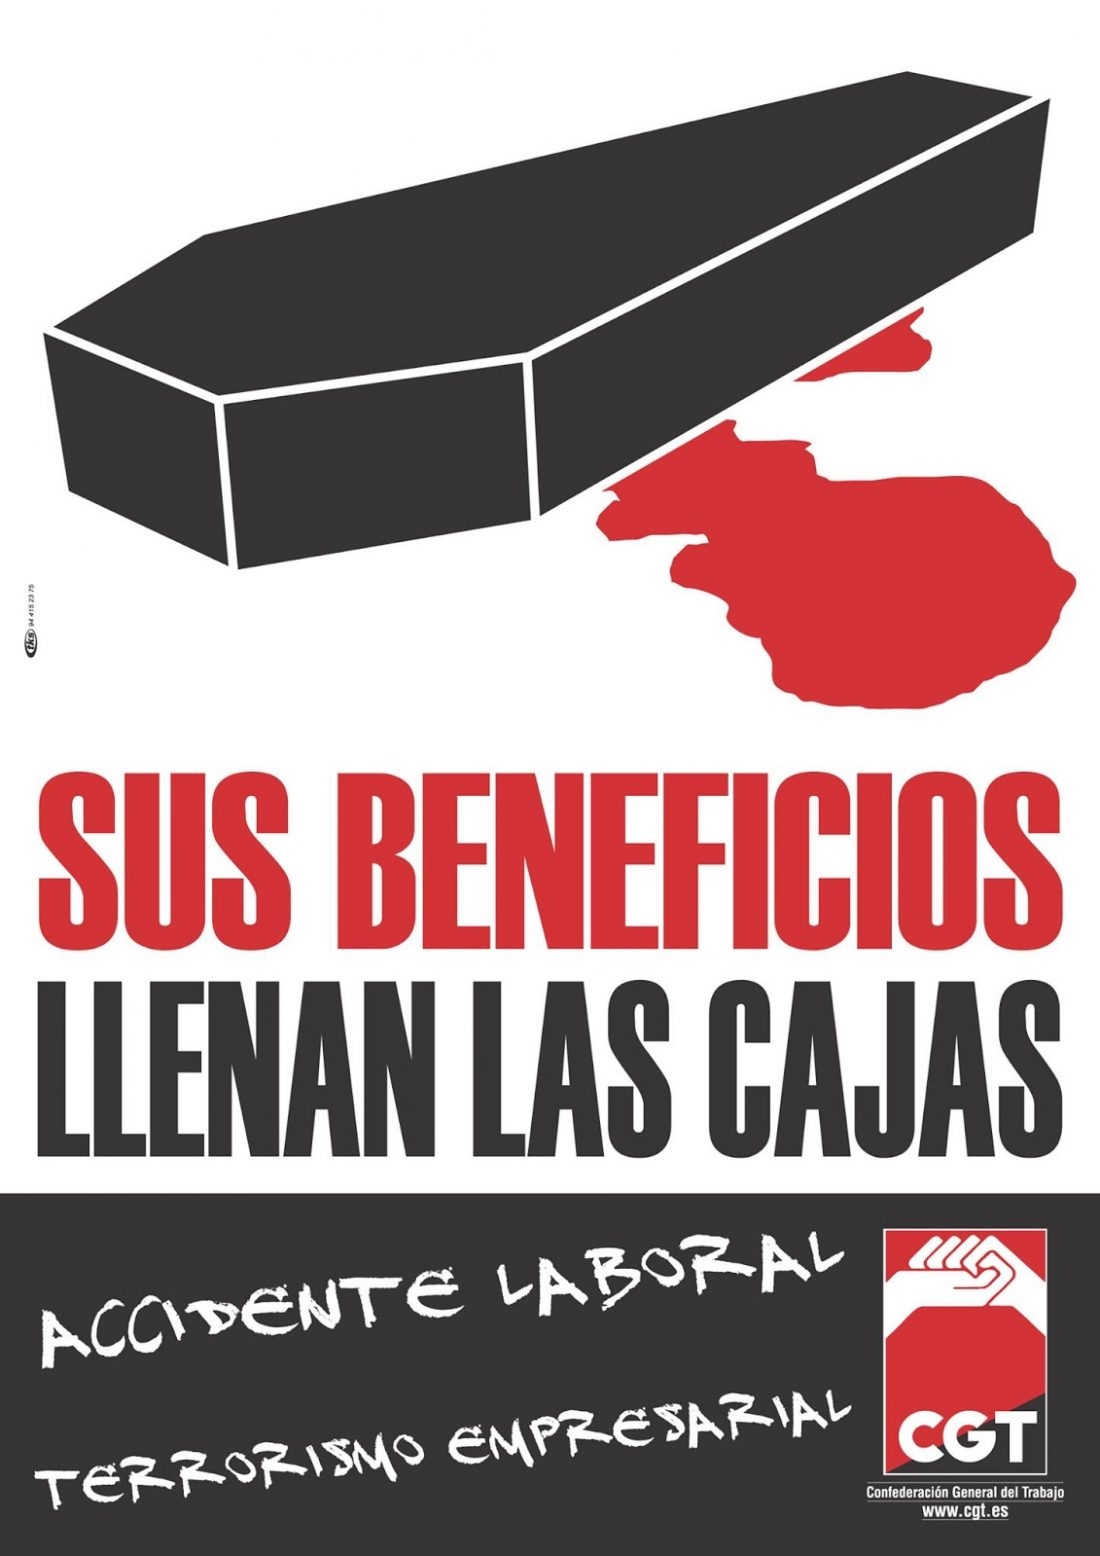 No son accidentes, son asesinatos